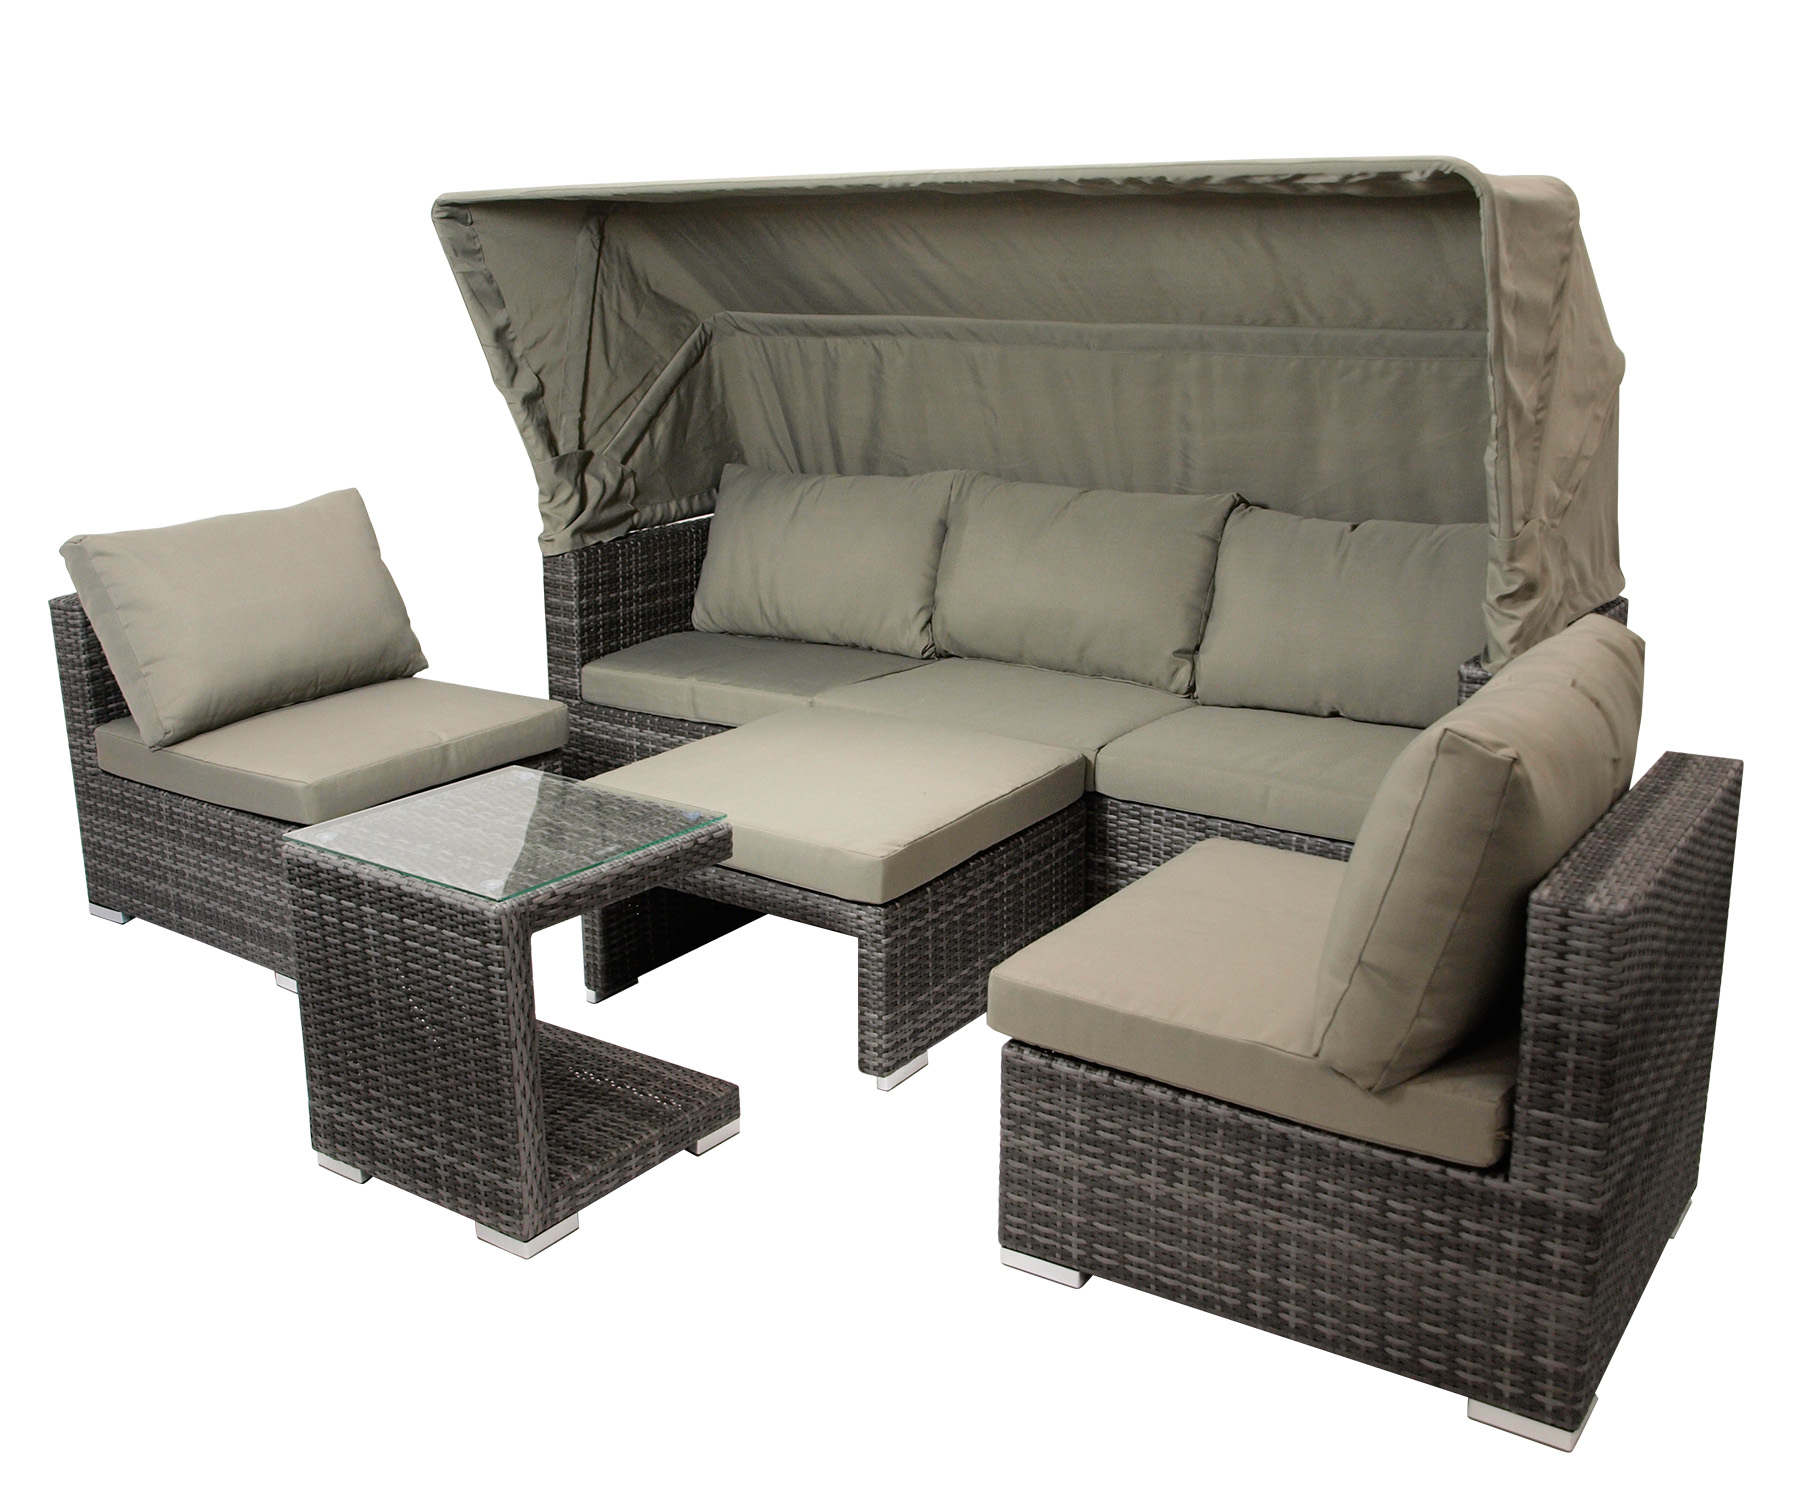 loungeset sitzgruppe liegeinsel gartenm bel liege lounge manacor alu rattan grau 4050747361618. Black Bedroom Furniture Sets. Home Design Ideas